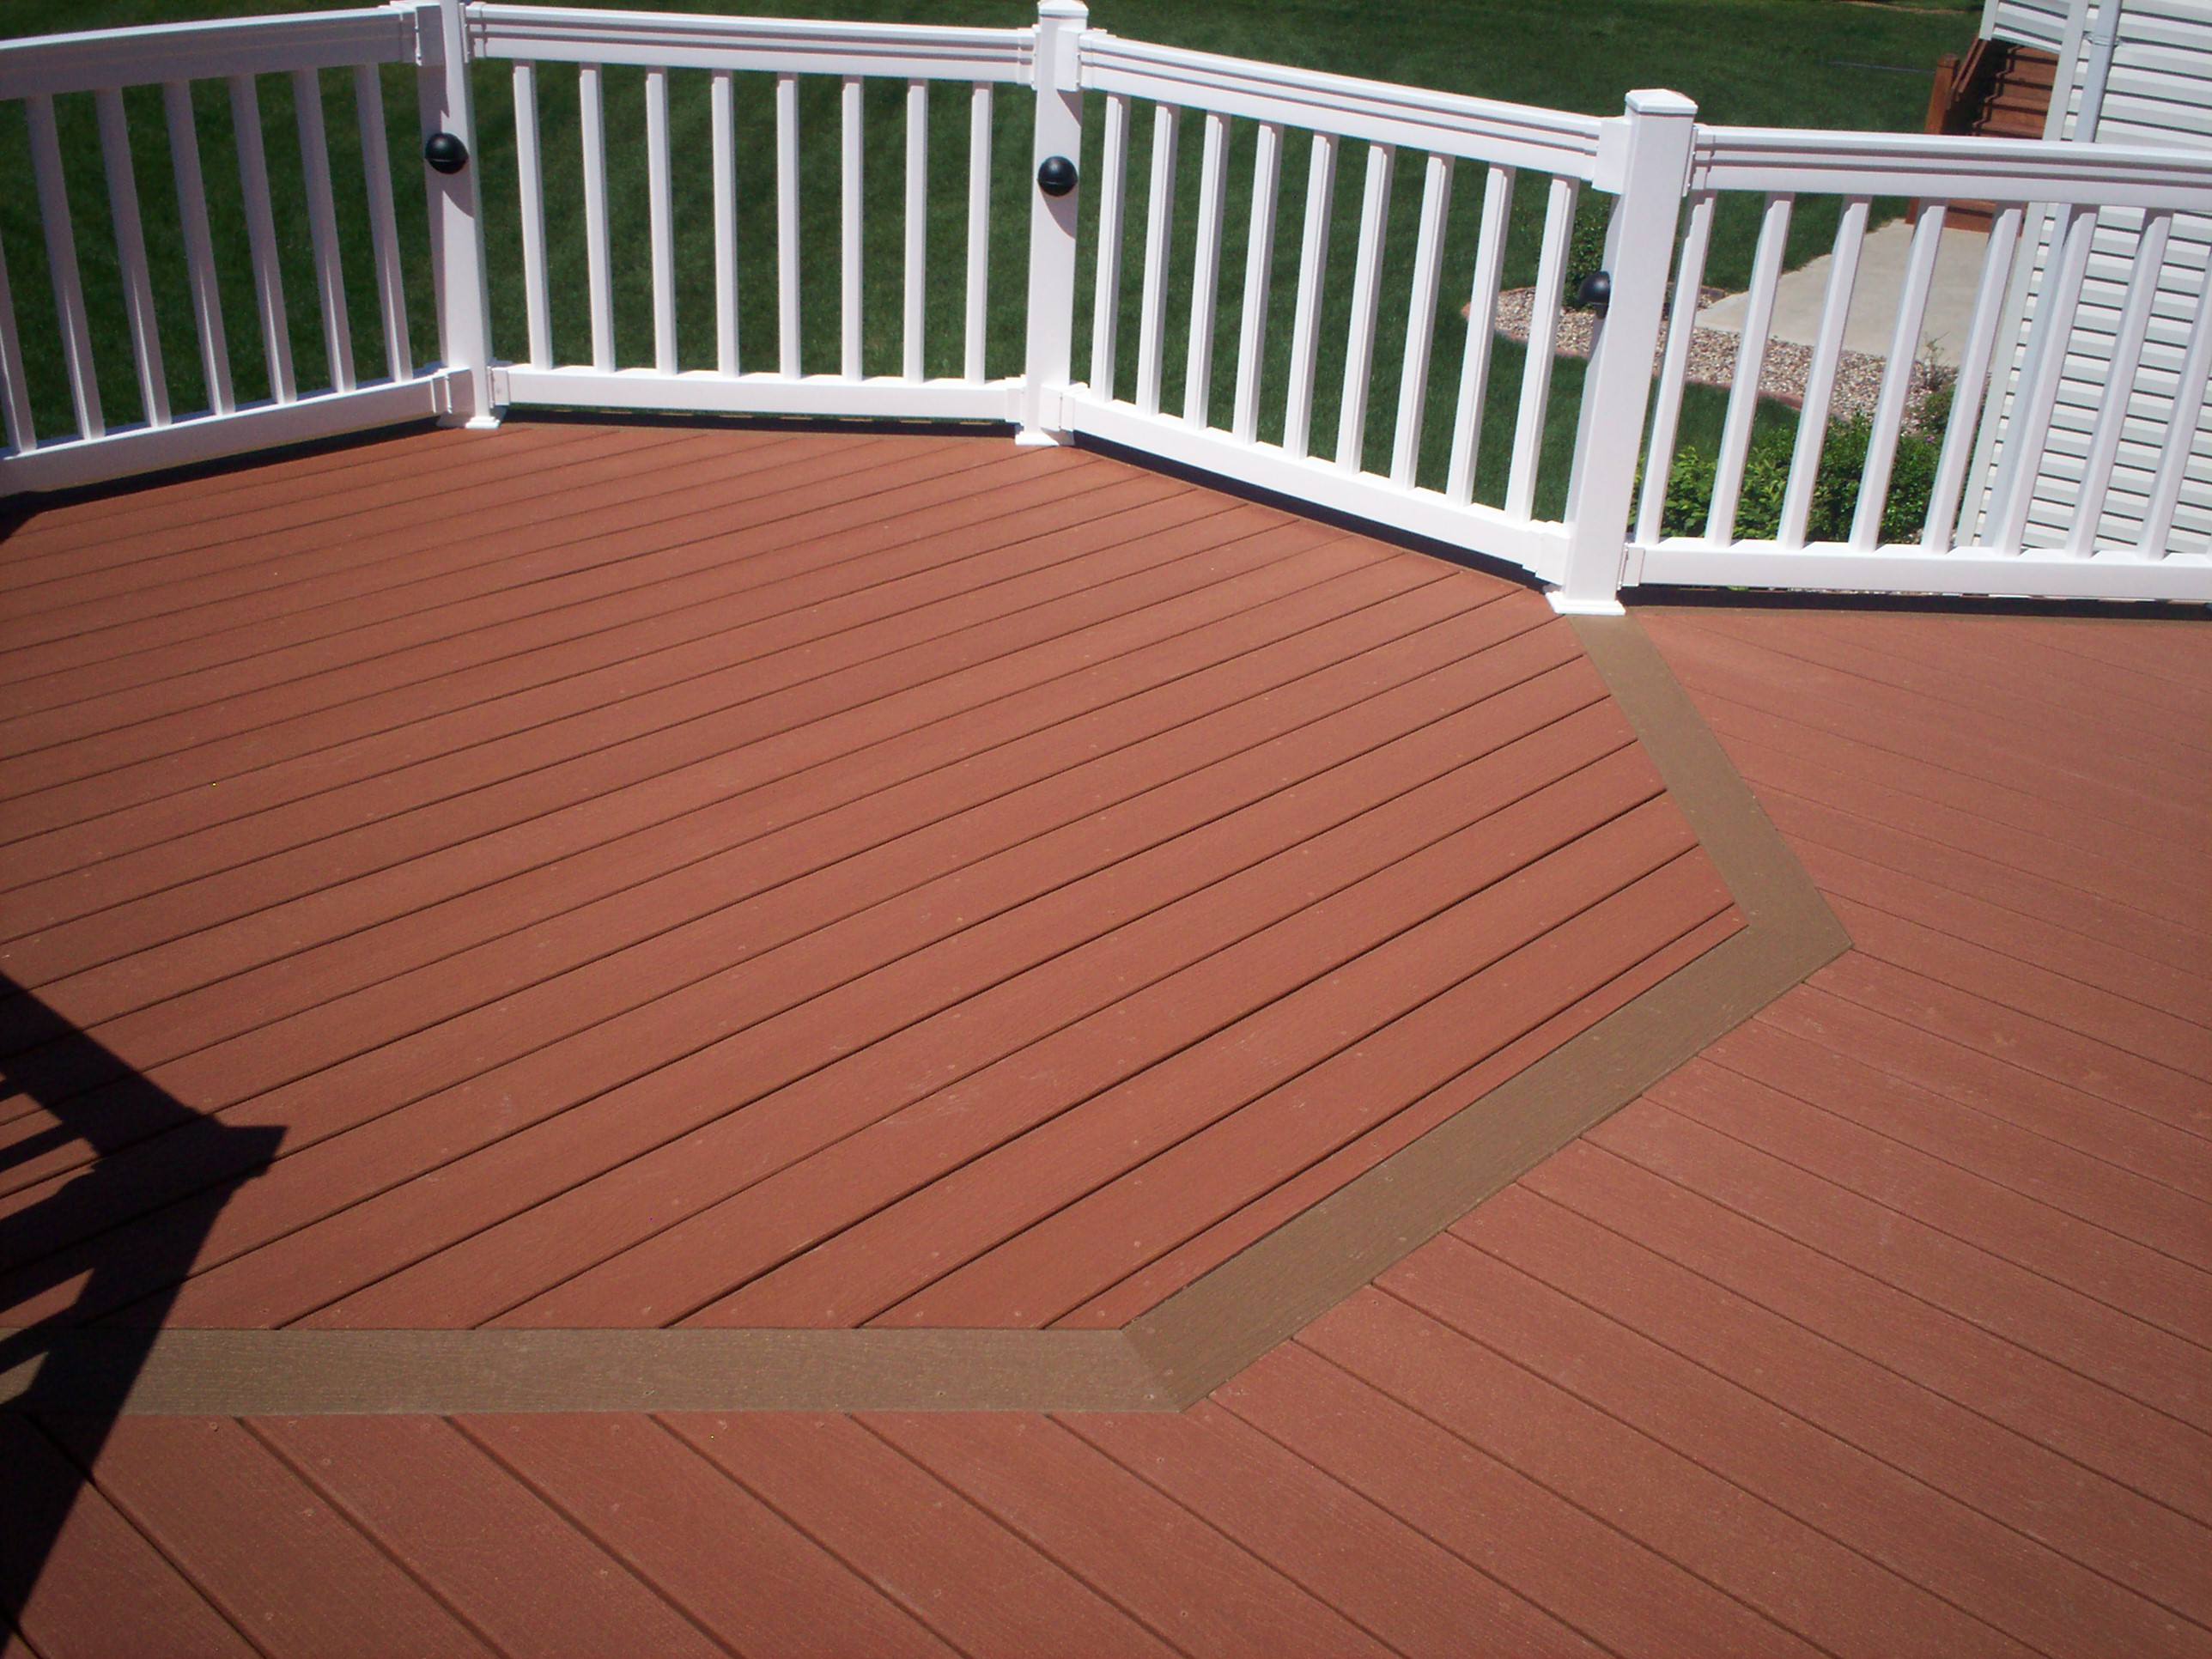 st louis deck designs with floor board patterns st